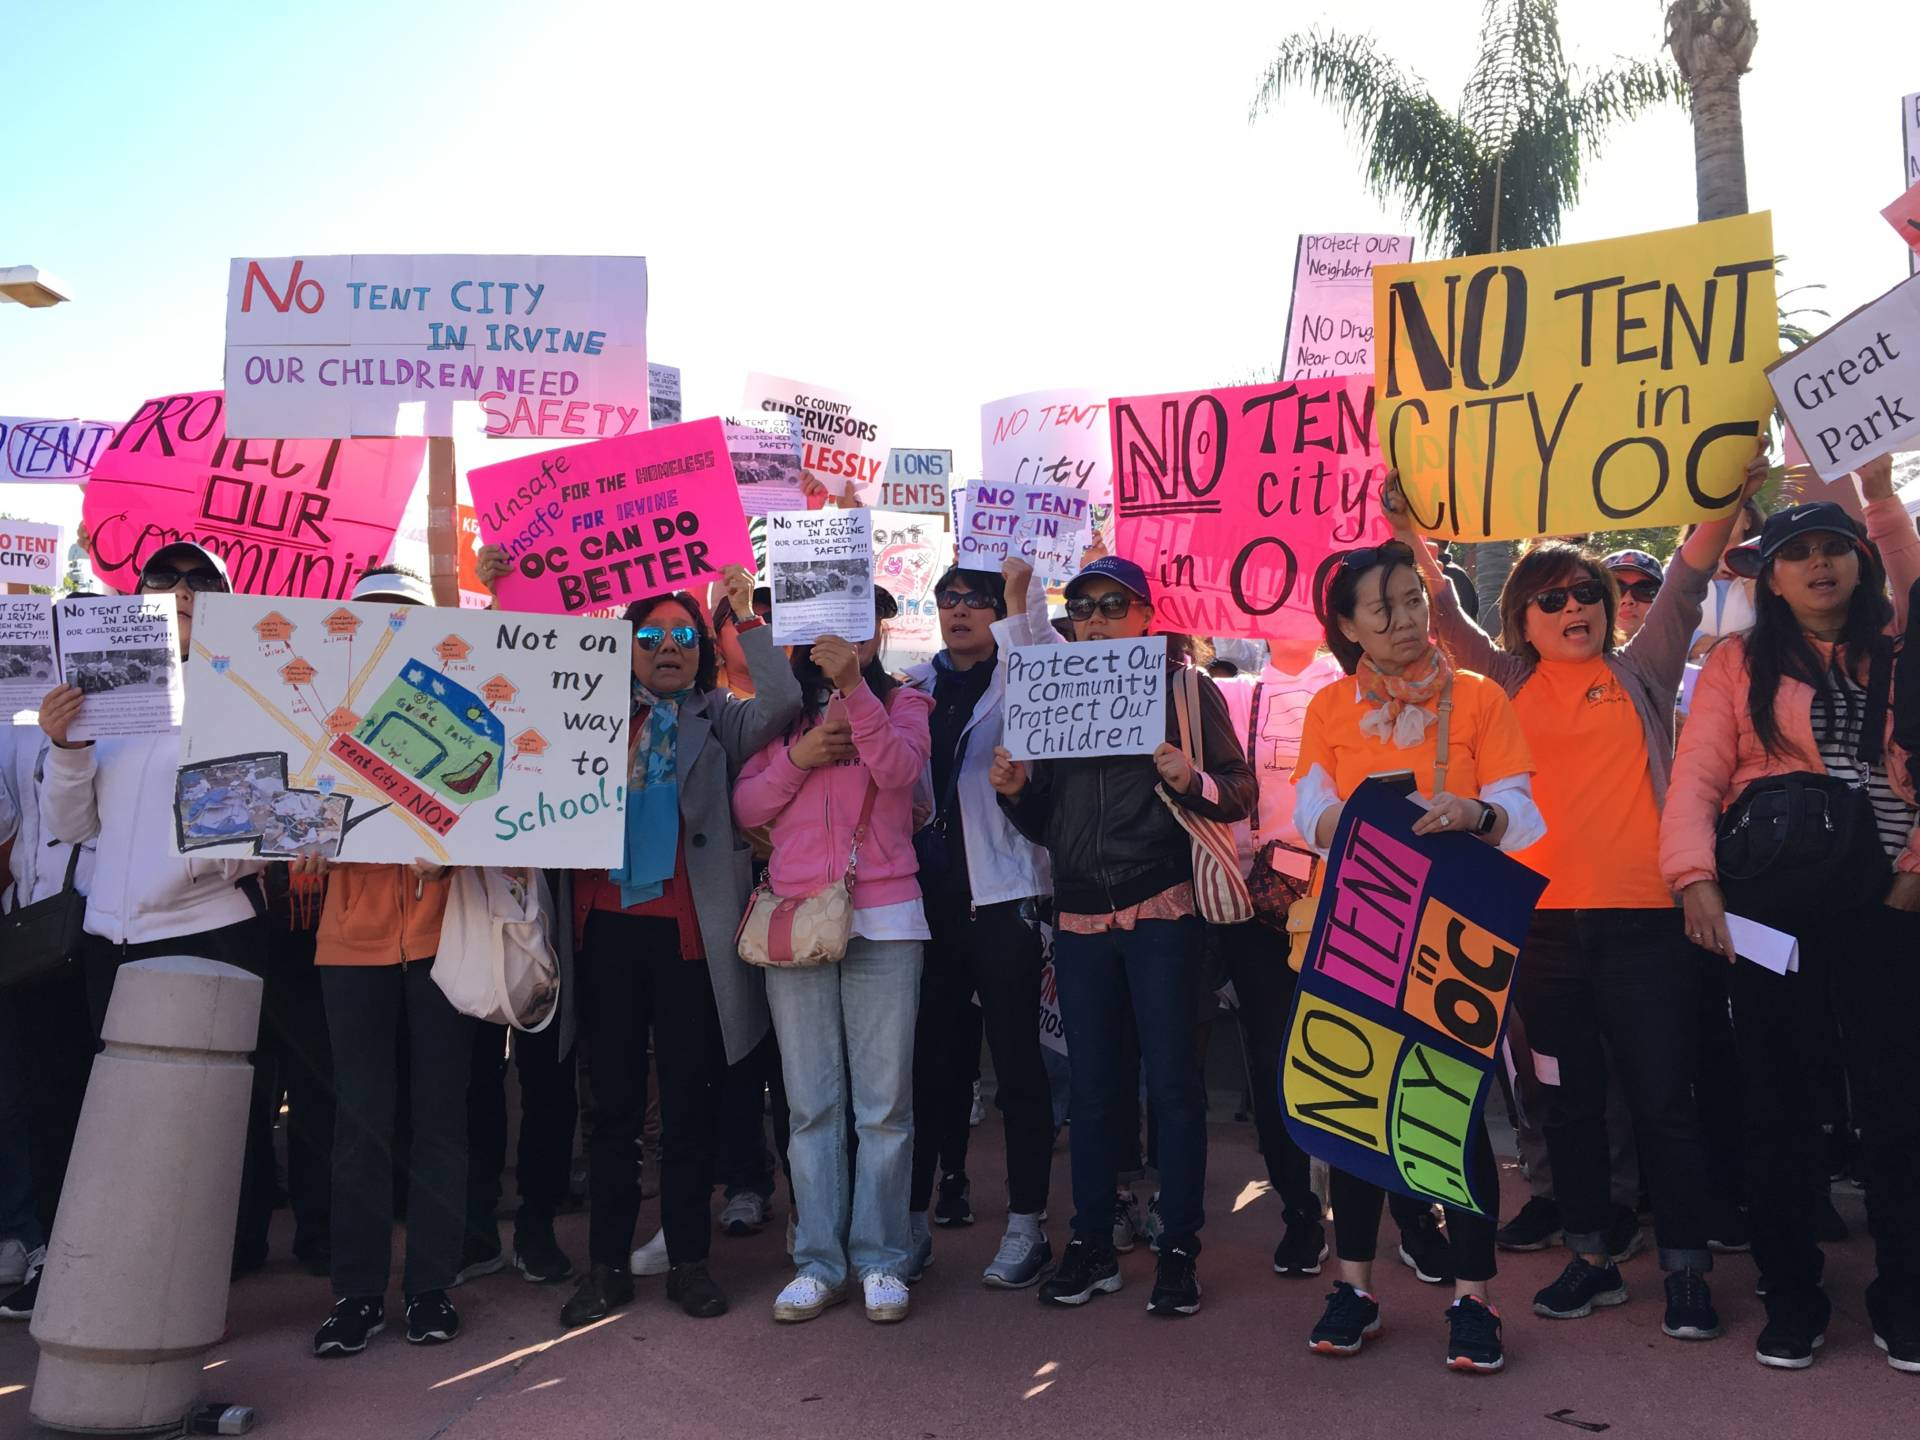 Protesters arrived in chartered buses to fight a plan by Orange County to relocate homeless people from Santa Ana to new temporary shelters in more affluent coastal cities. Linda Wang/NPR